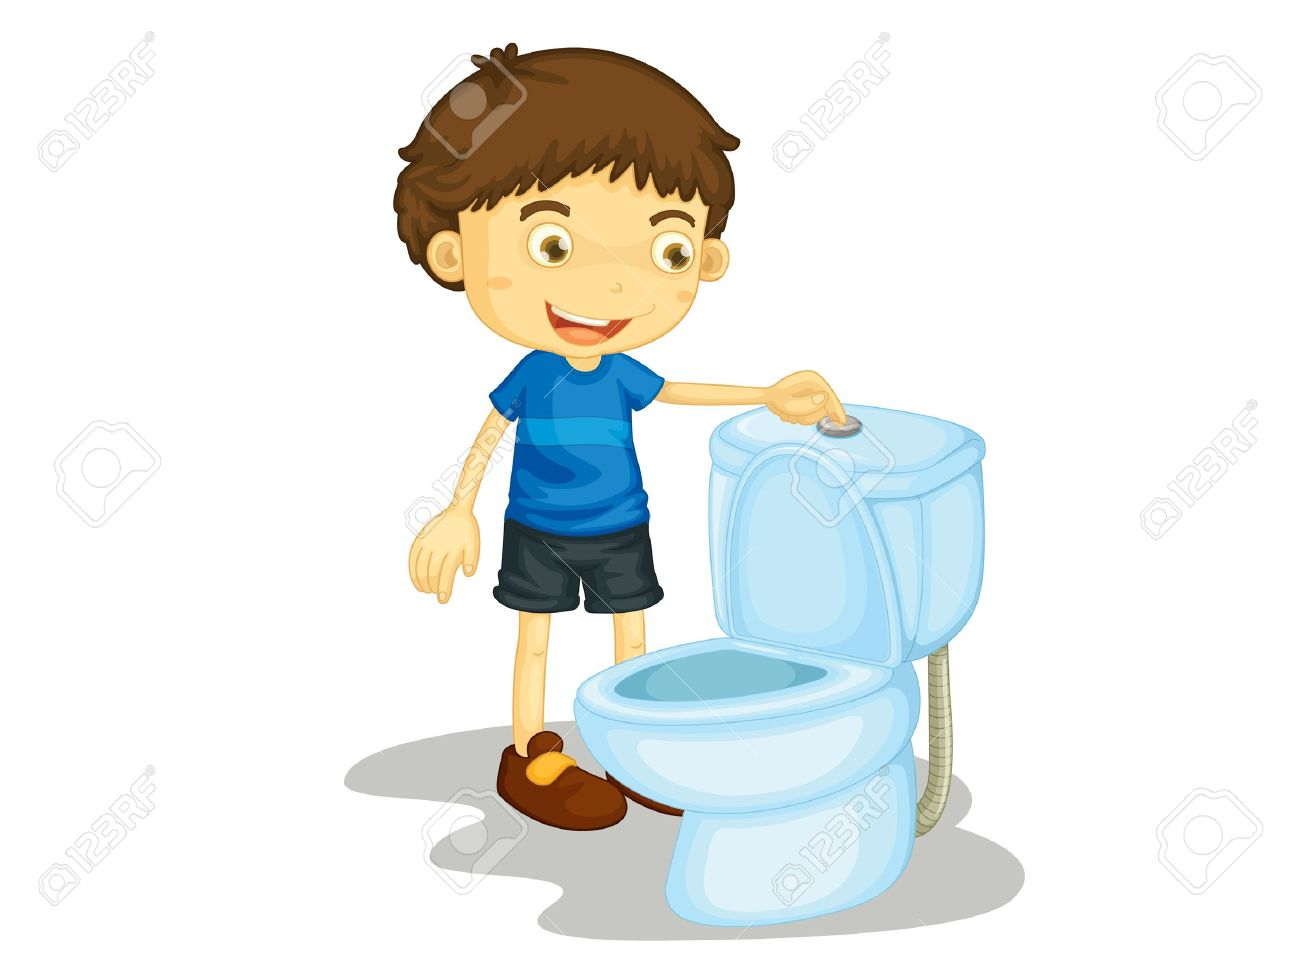 Clipart flush toilet.